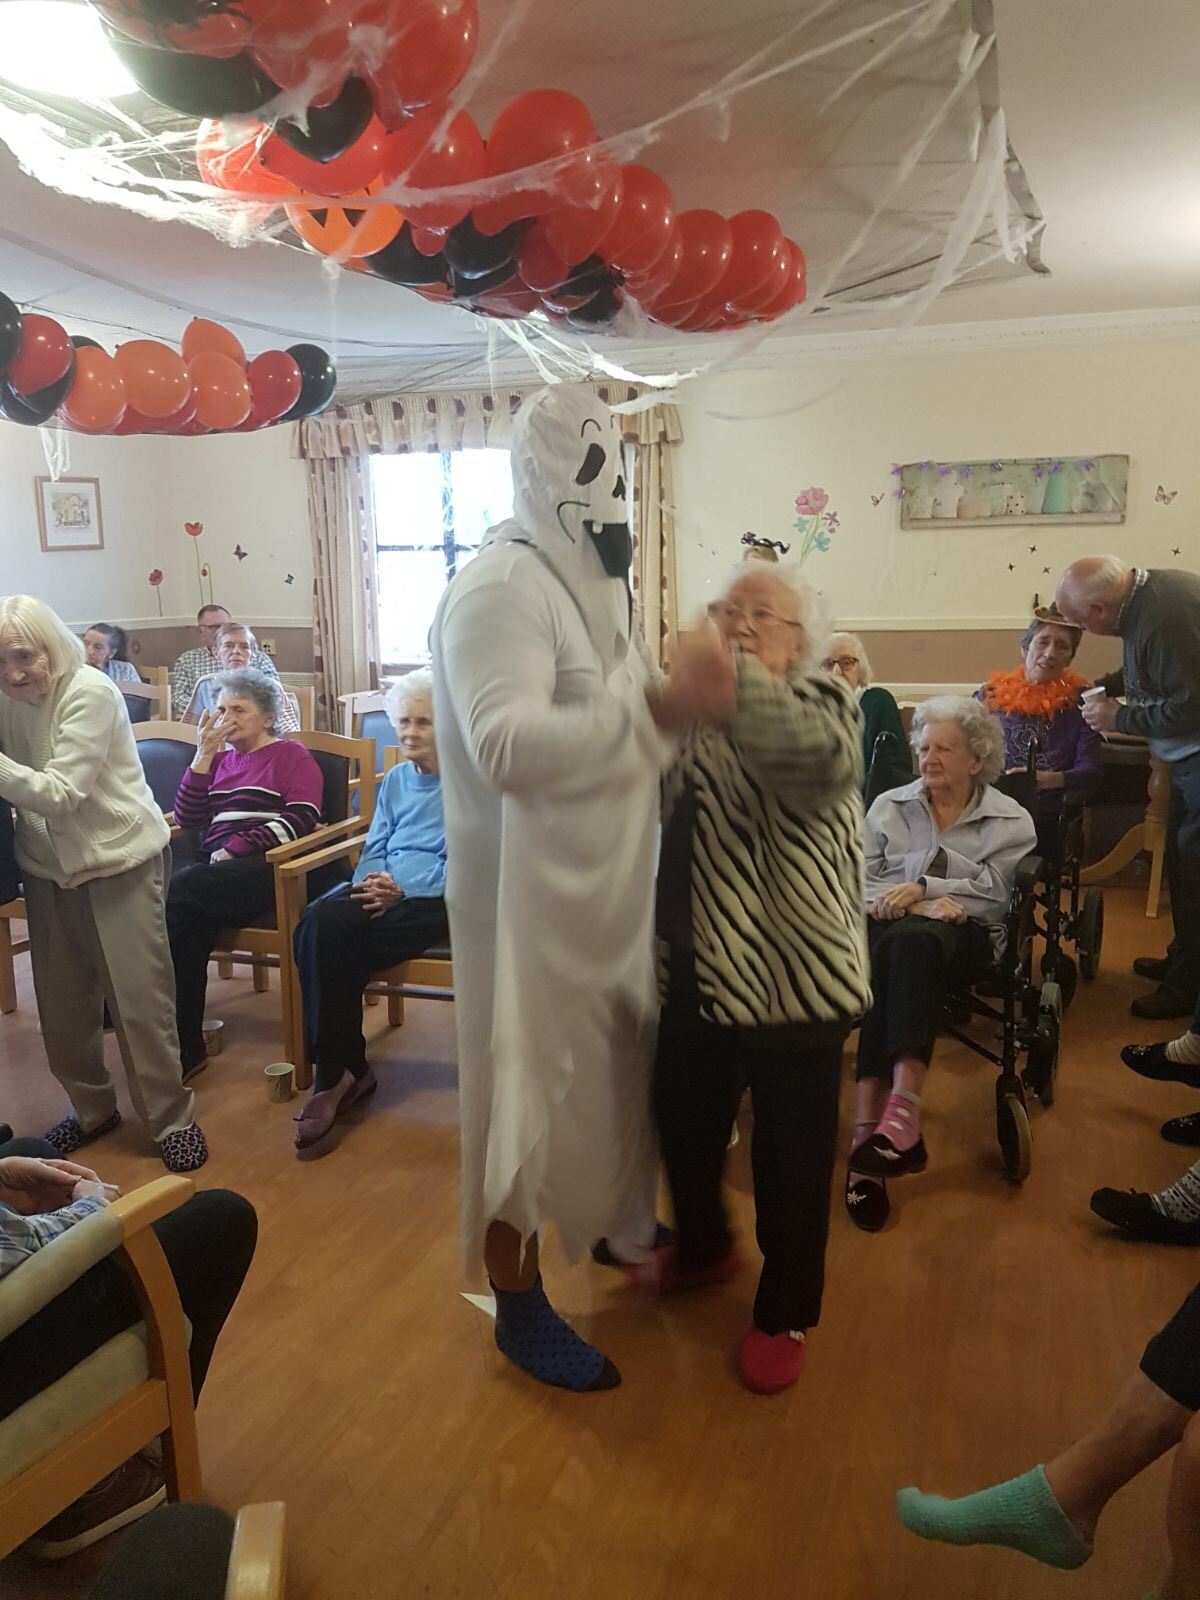 Ghost Busters or Dancers!: Key Healthcare is dedicated to caring for elderly residents in safe. We have multiple dementia care homes including our care home middlesbrough, our care home St. Helen and care home saltburn. We excel in monitoring and improving care levels.